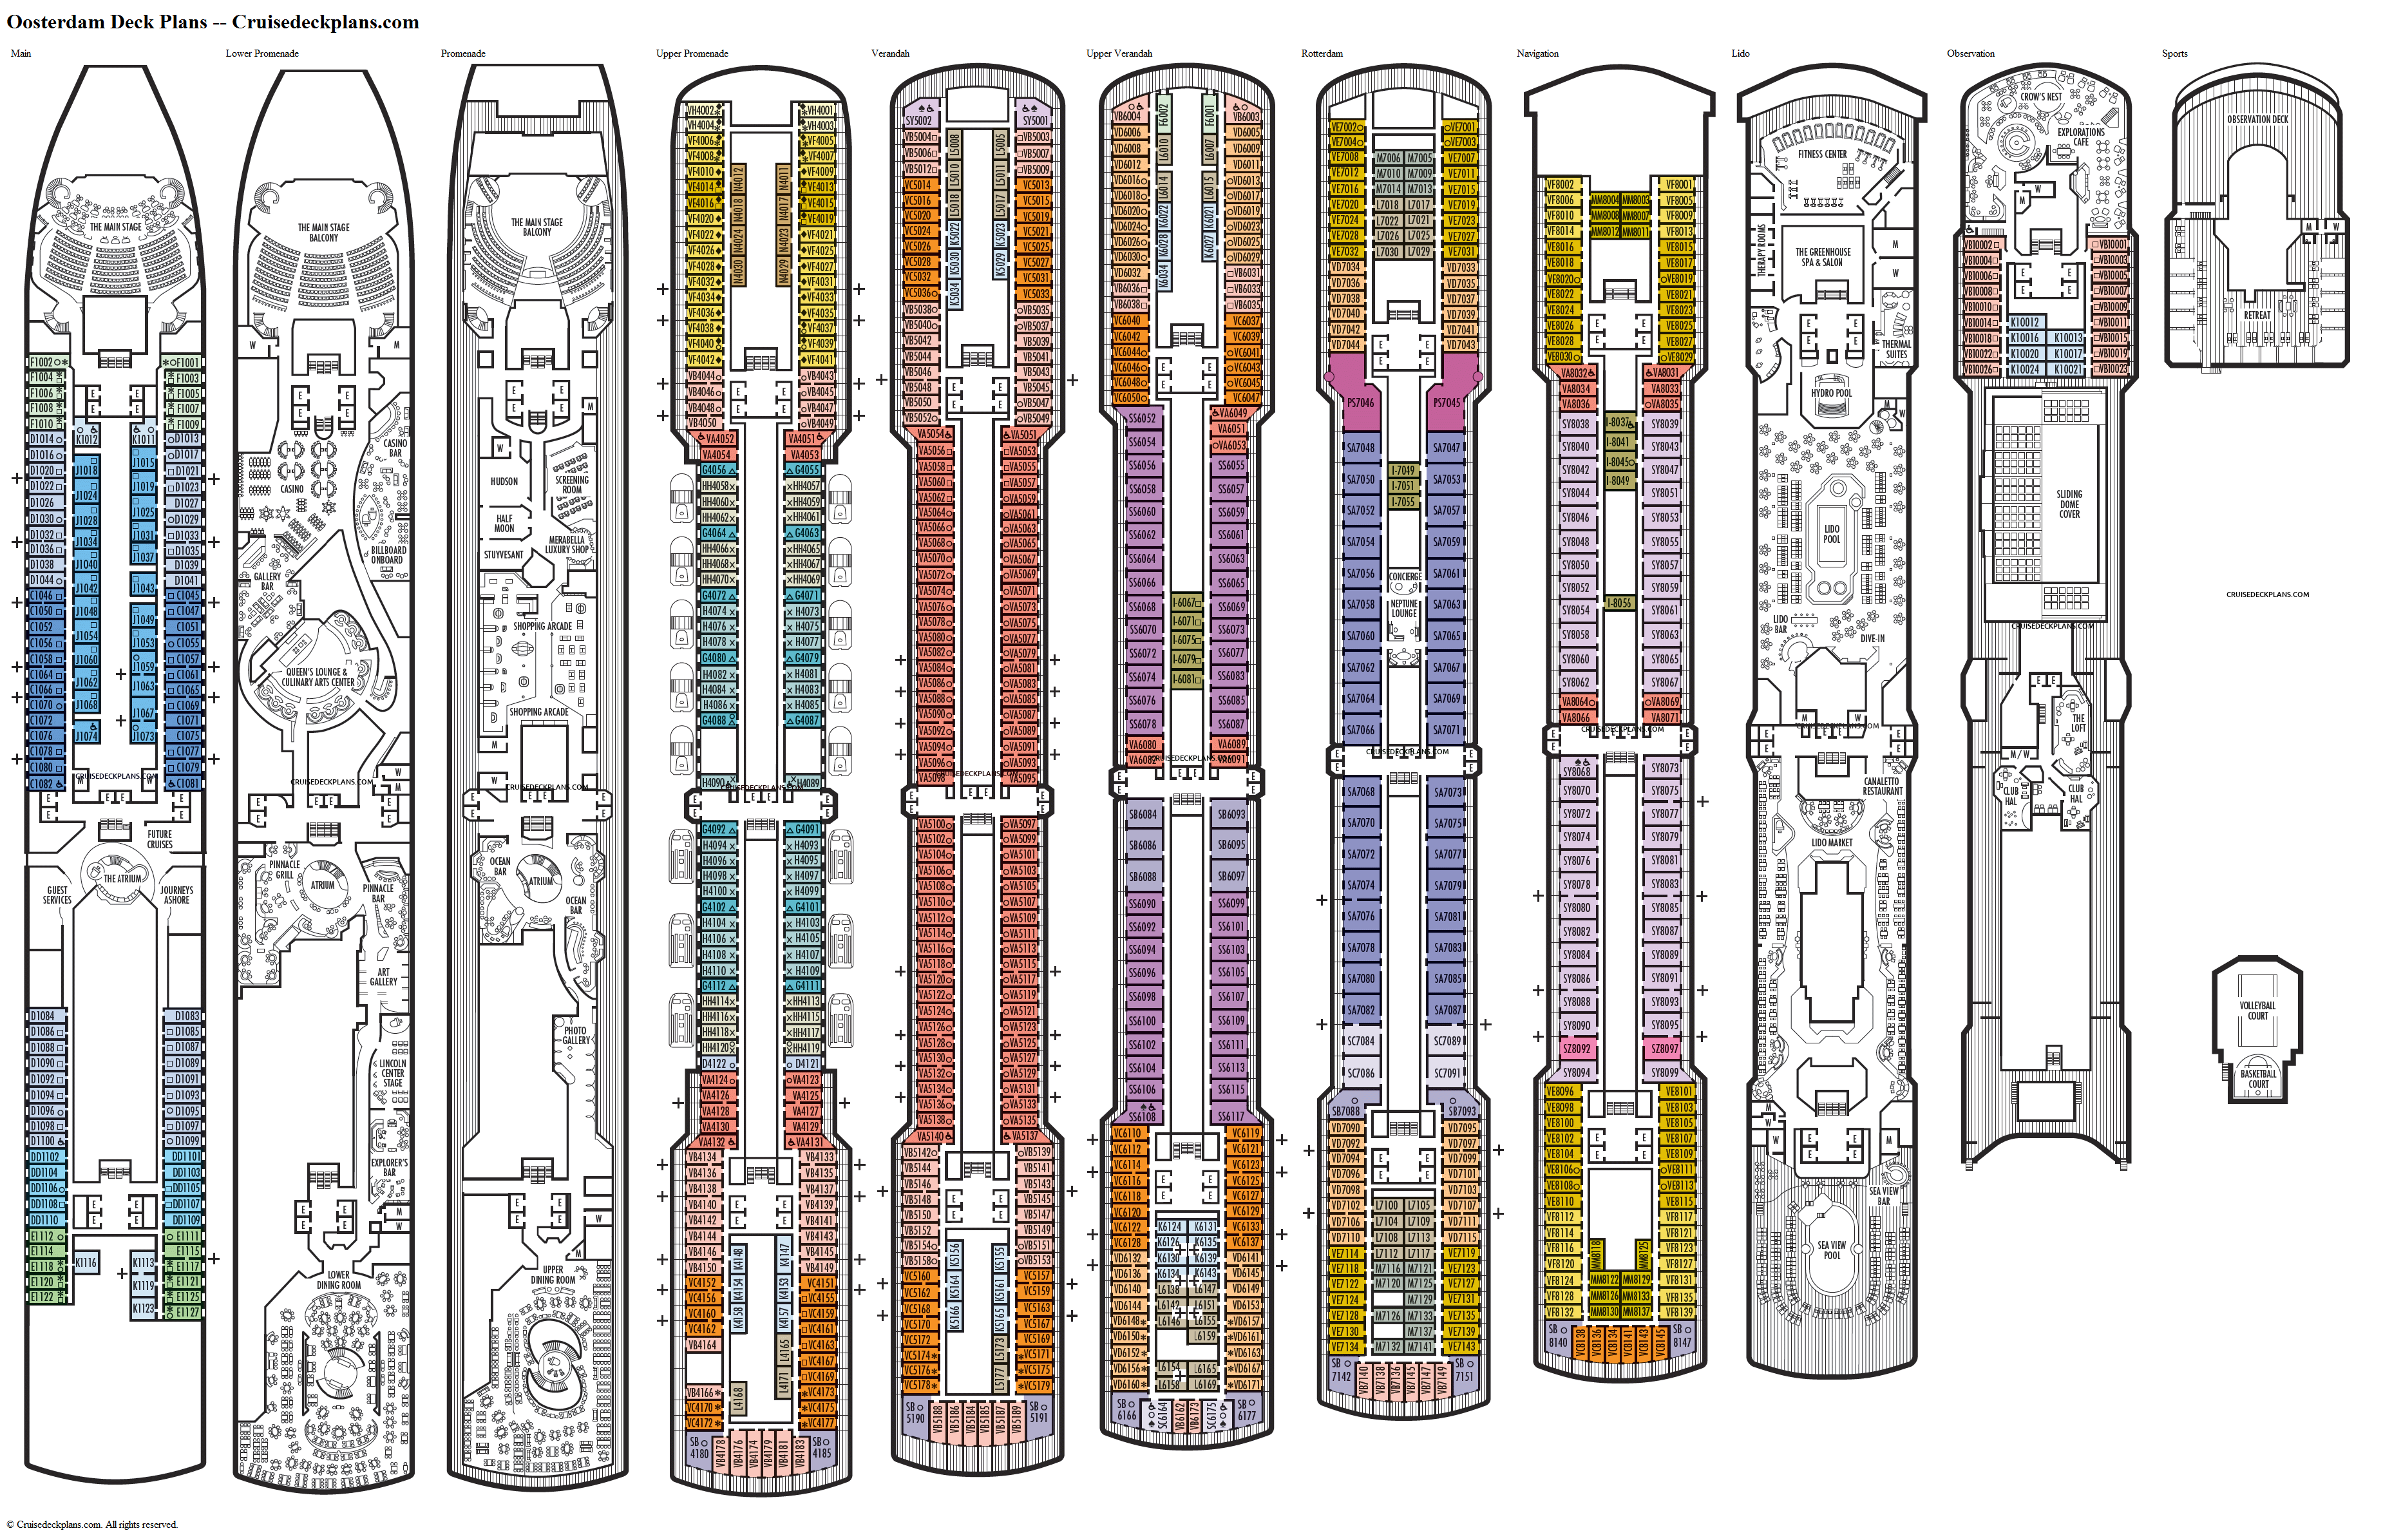 Oosterdam deck plans image